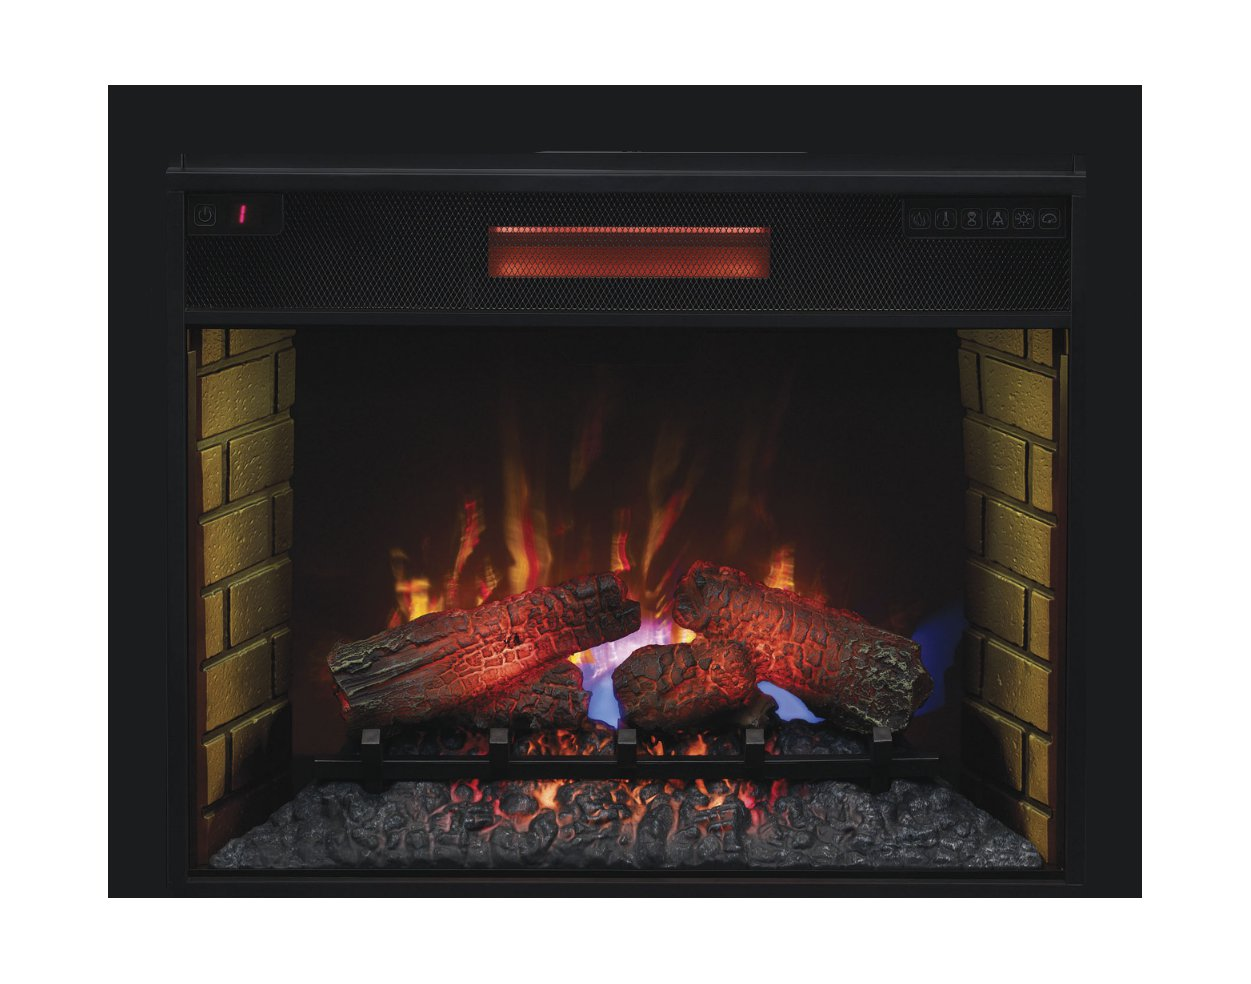 saving electric indoor supplier heater effect flame fireplace energy sale remark with on quality